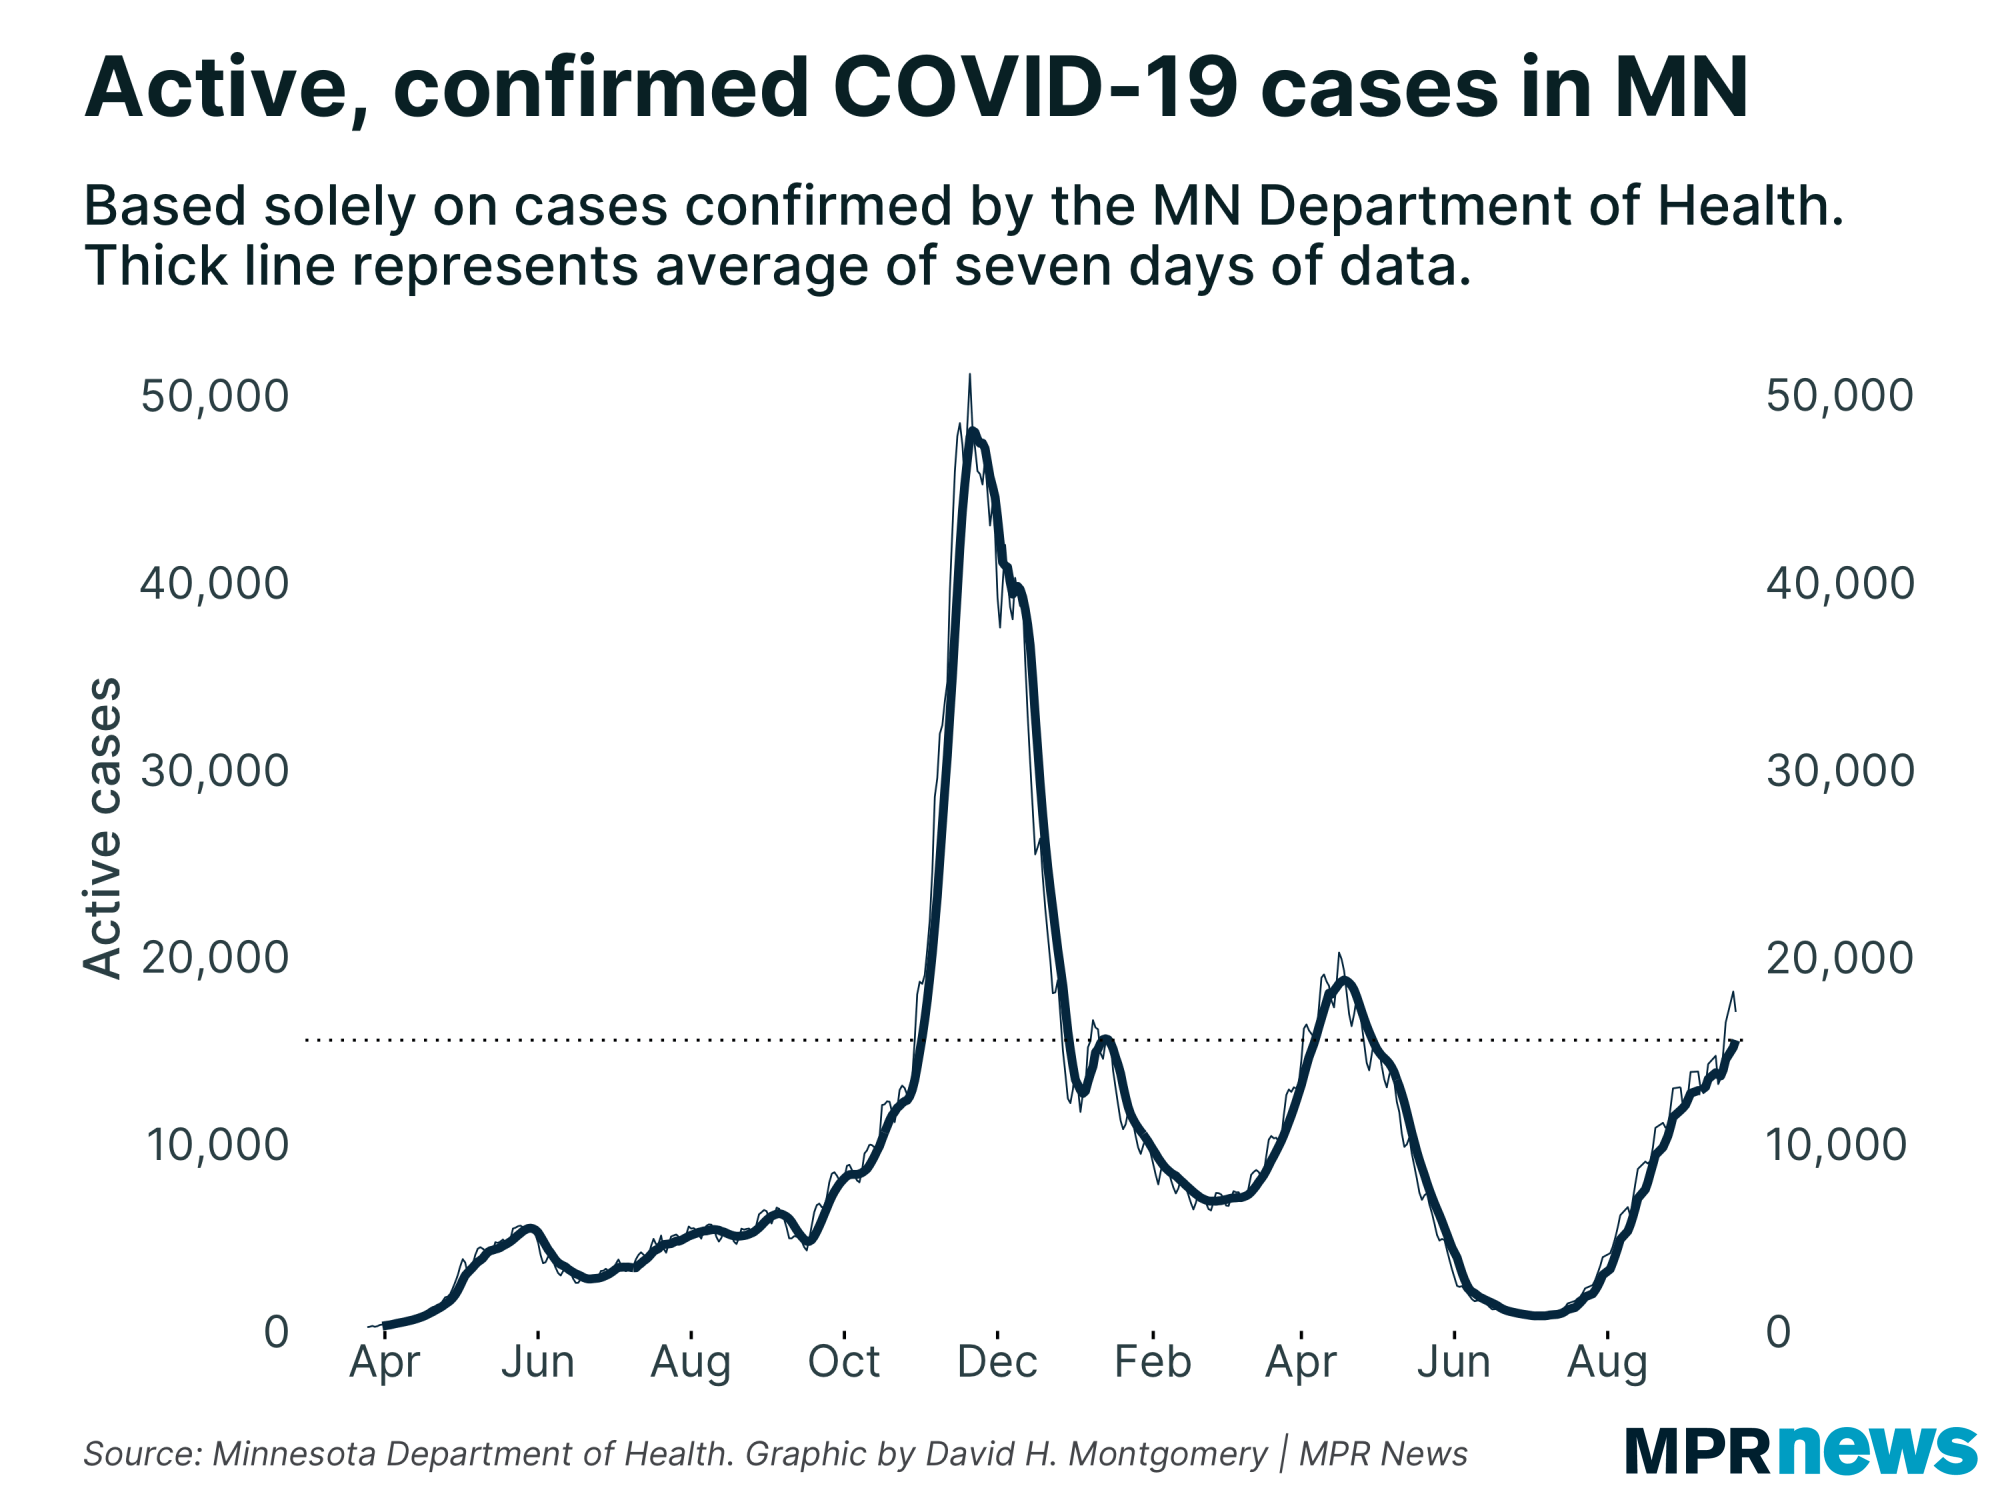 Active confirmed COVID-19 cases in Minnesota